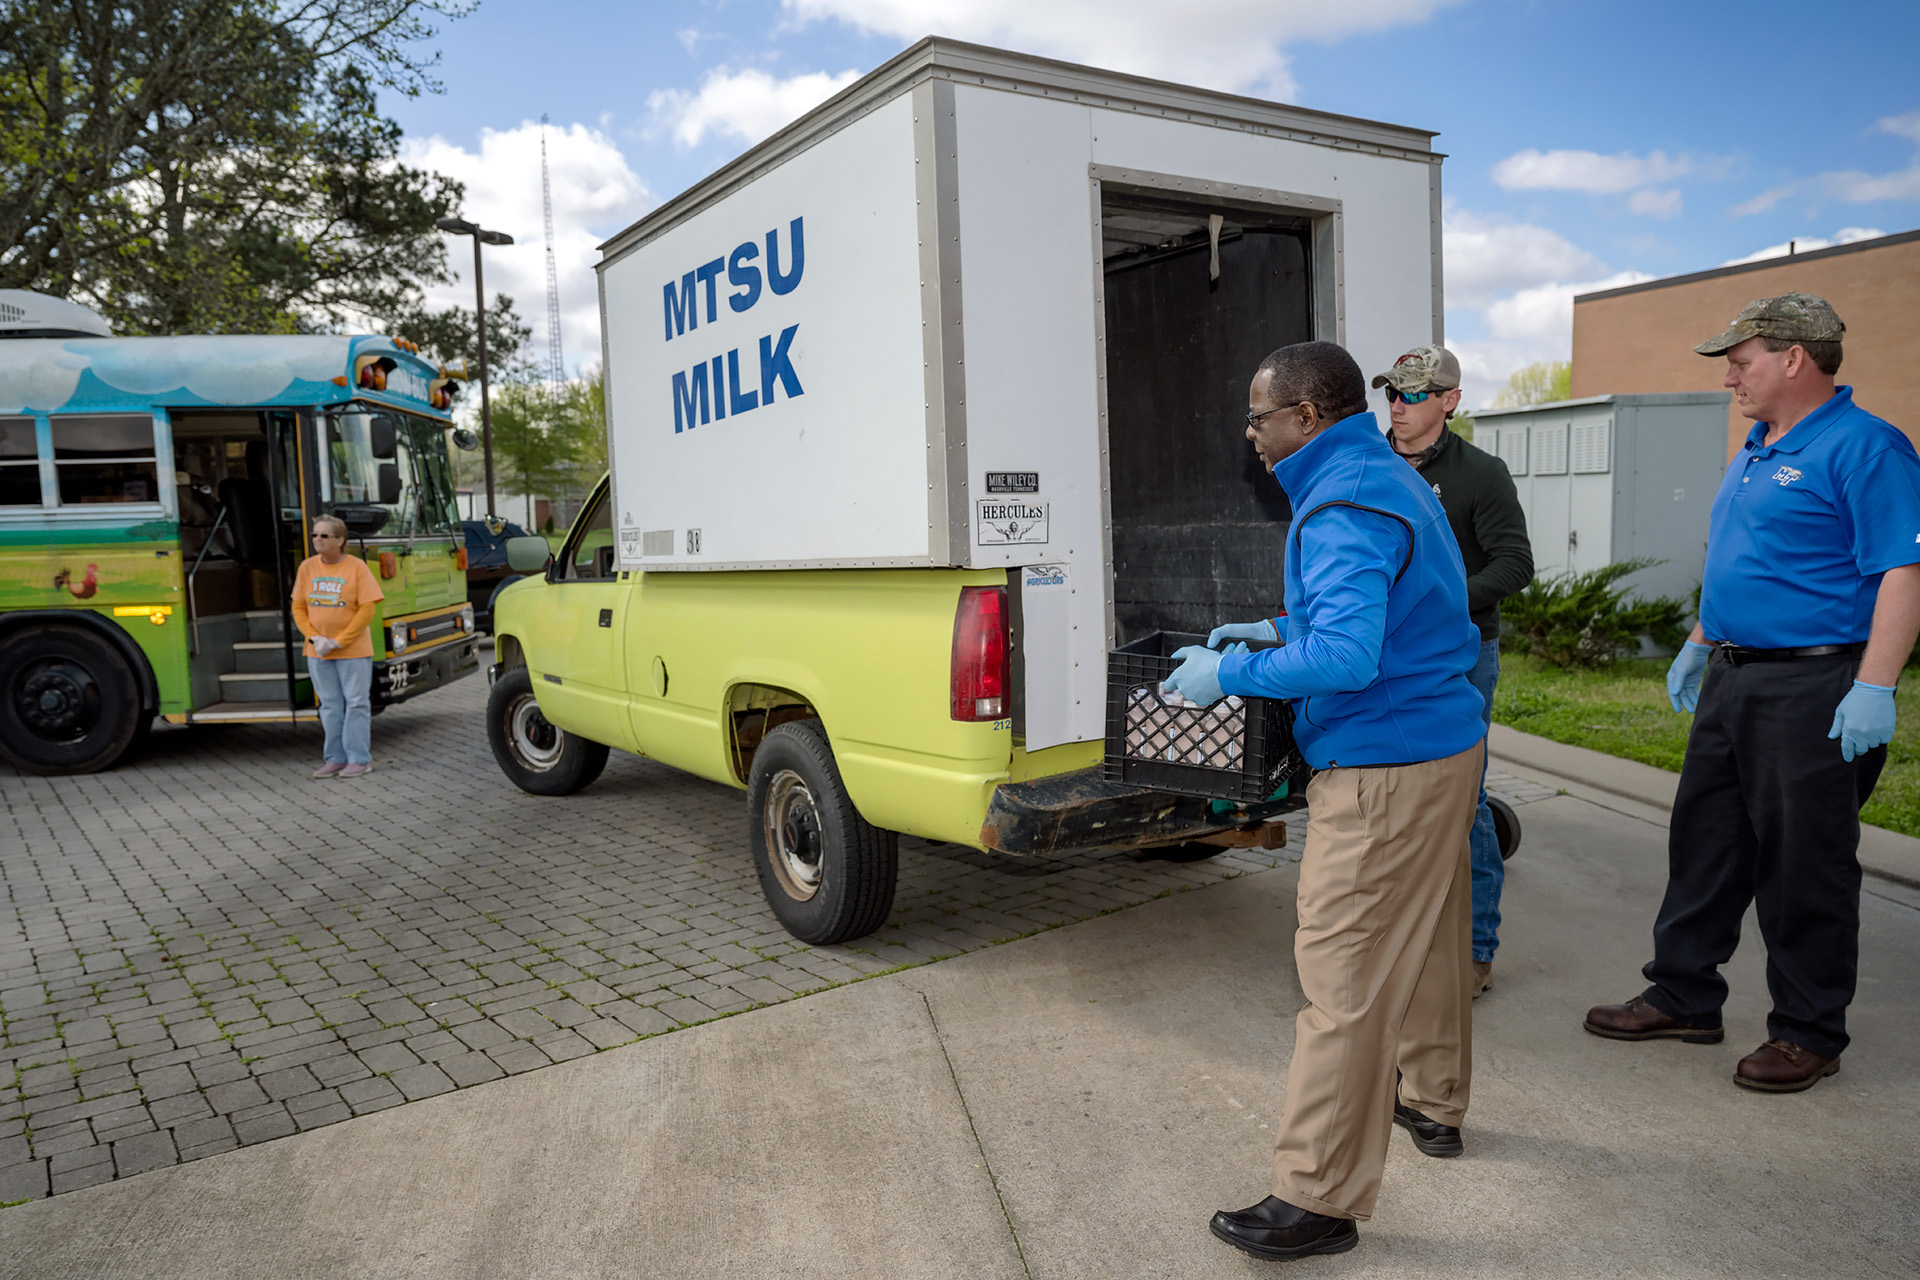 MTSU donates, delivers bottled milk for Hobgood Elementary's CHOW Bus